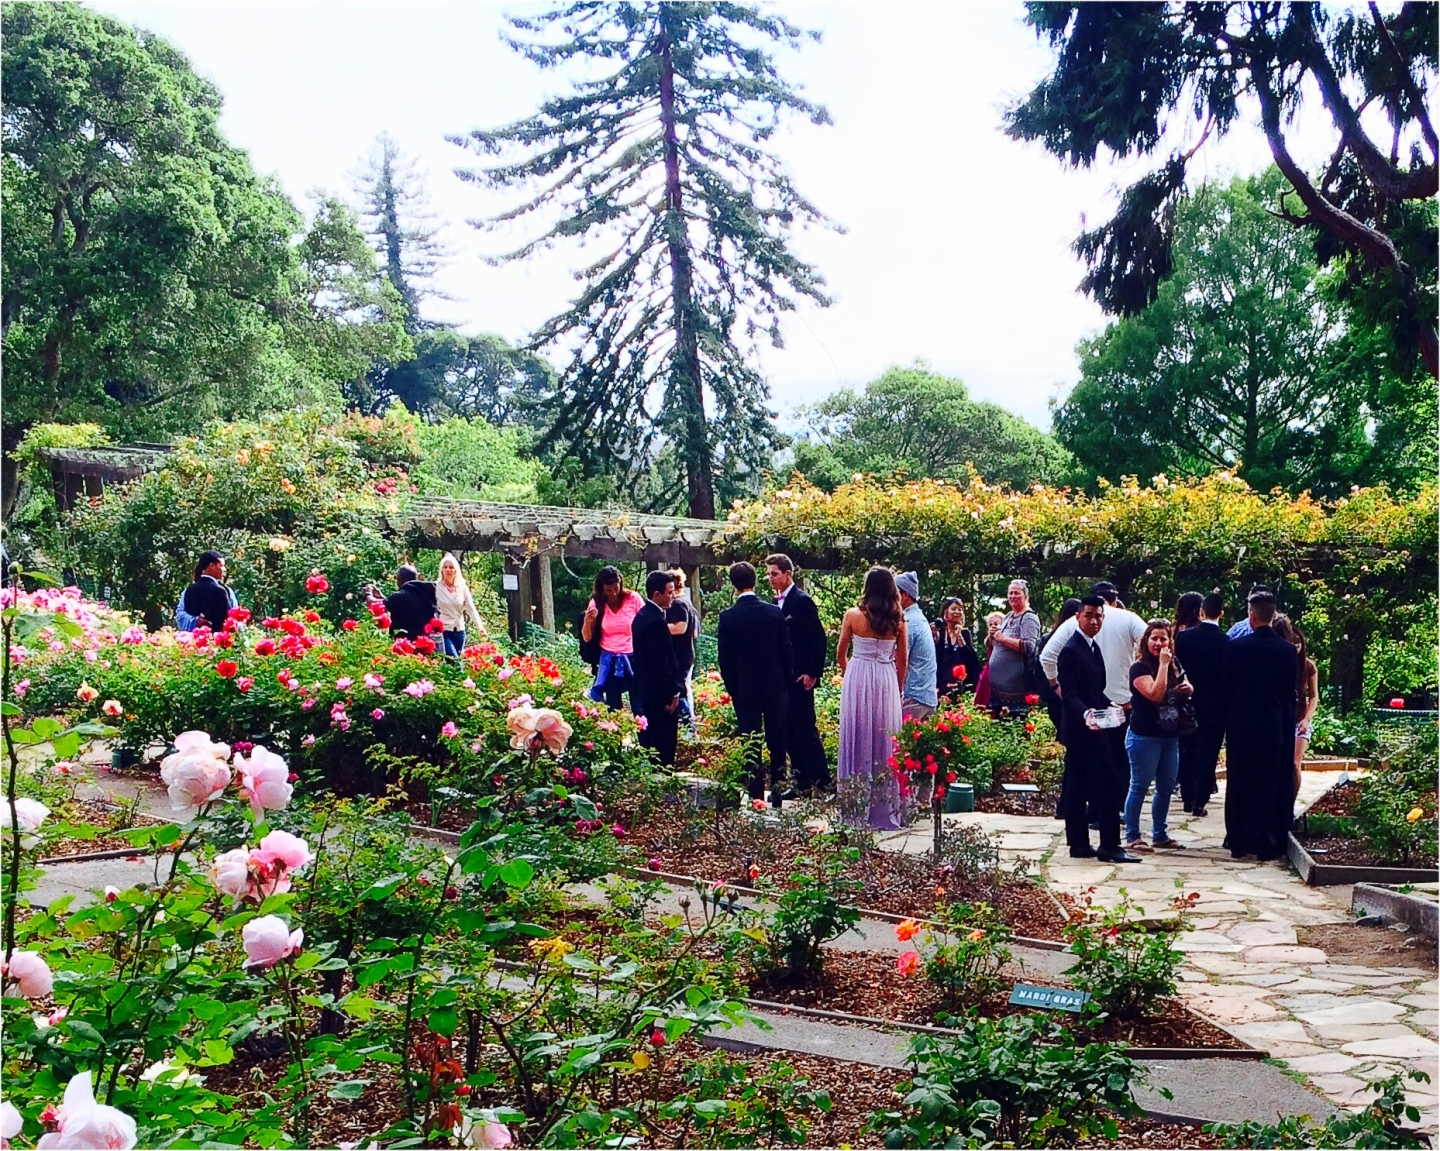 Gathering among the roses